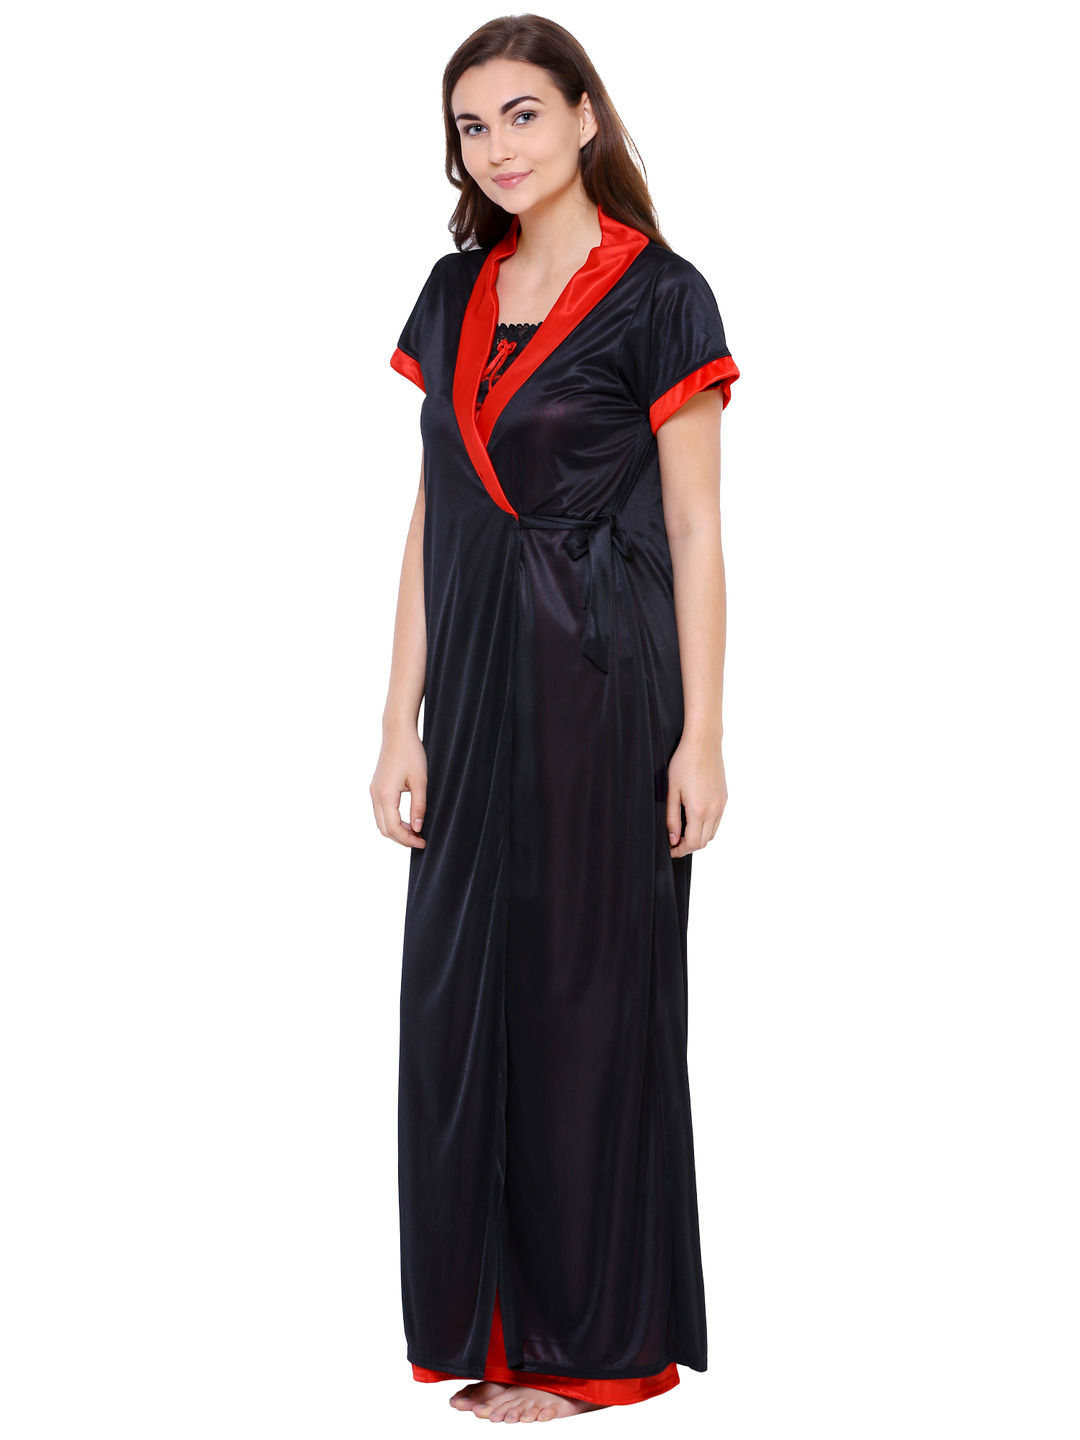 Secret Wish Women's Black Satin Nighty